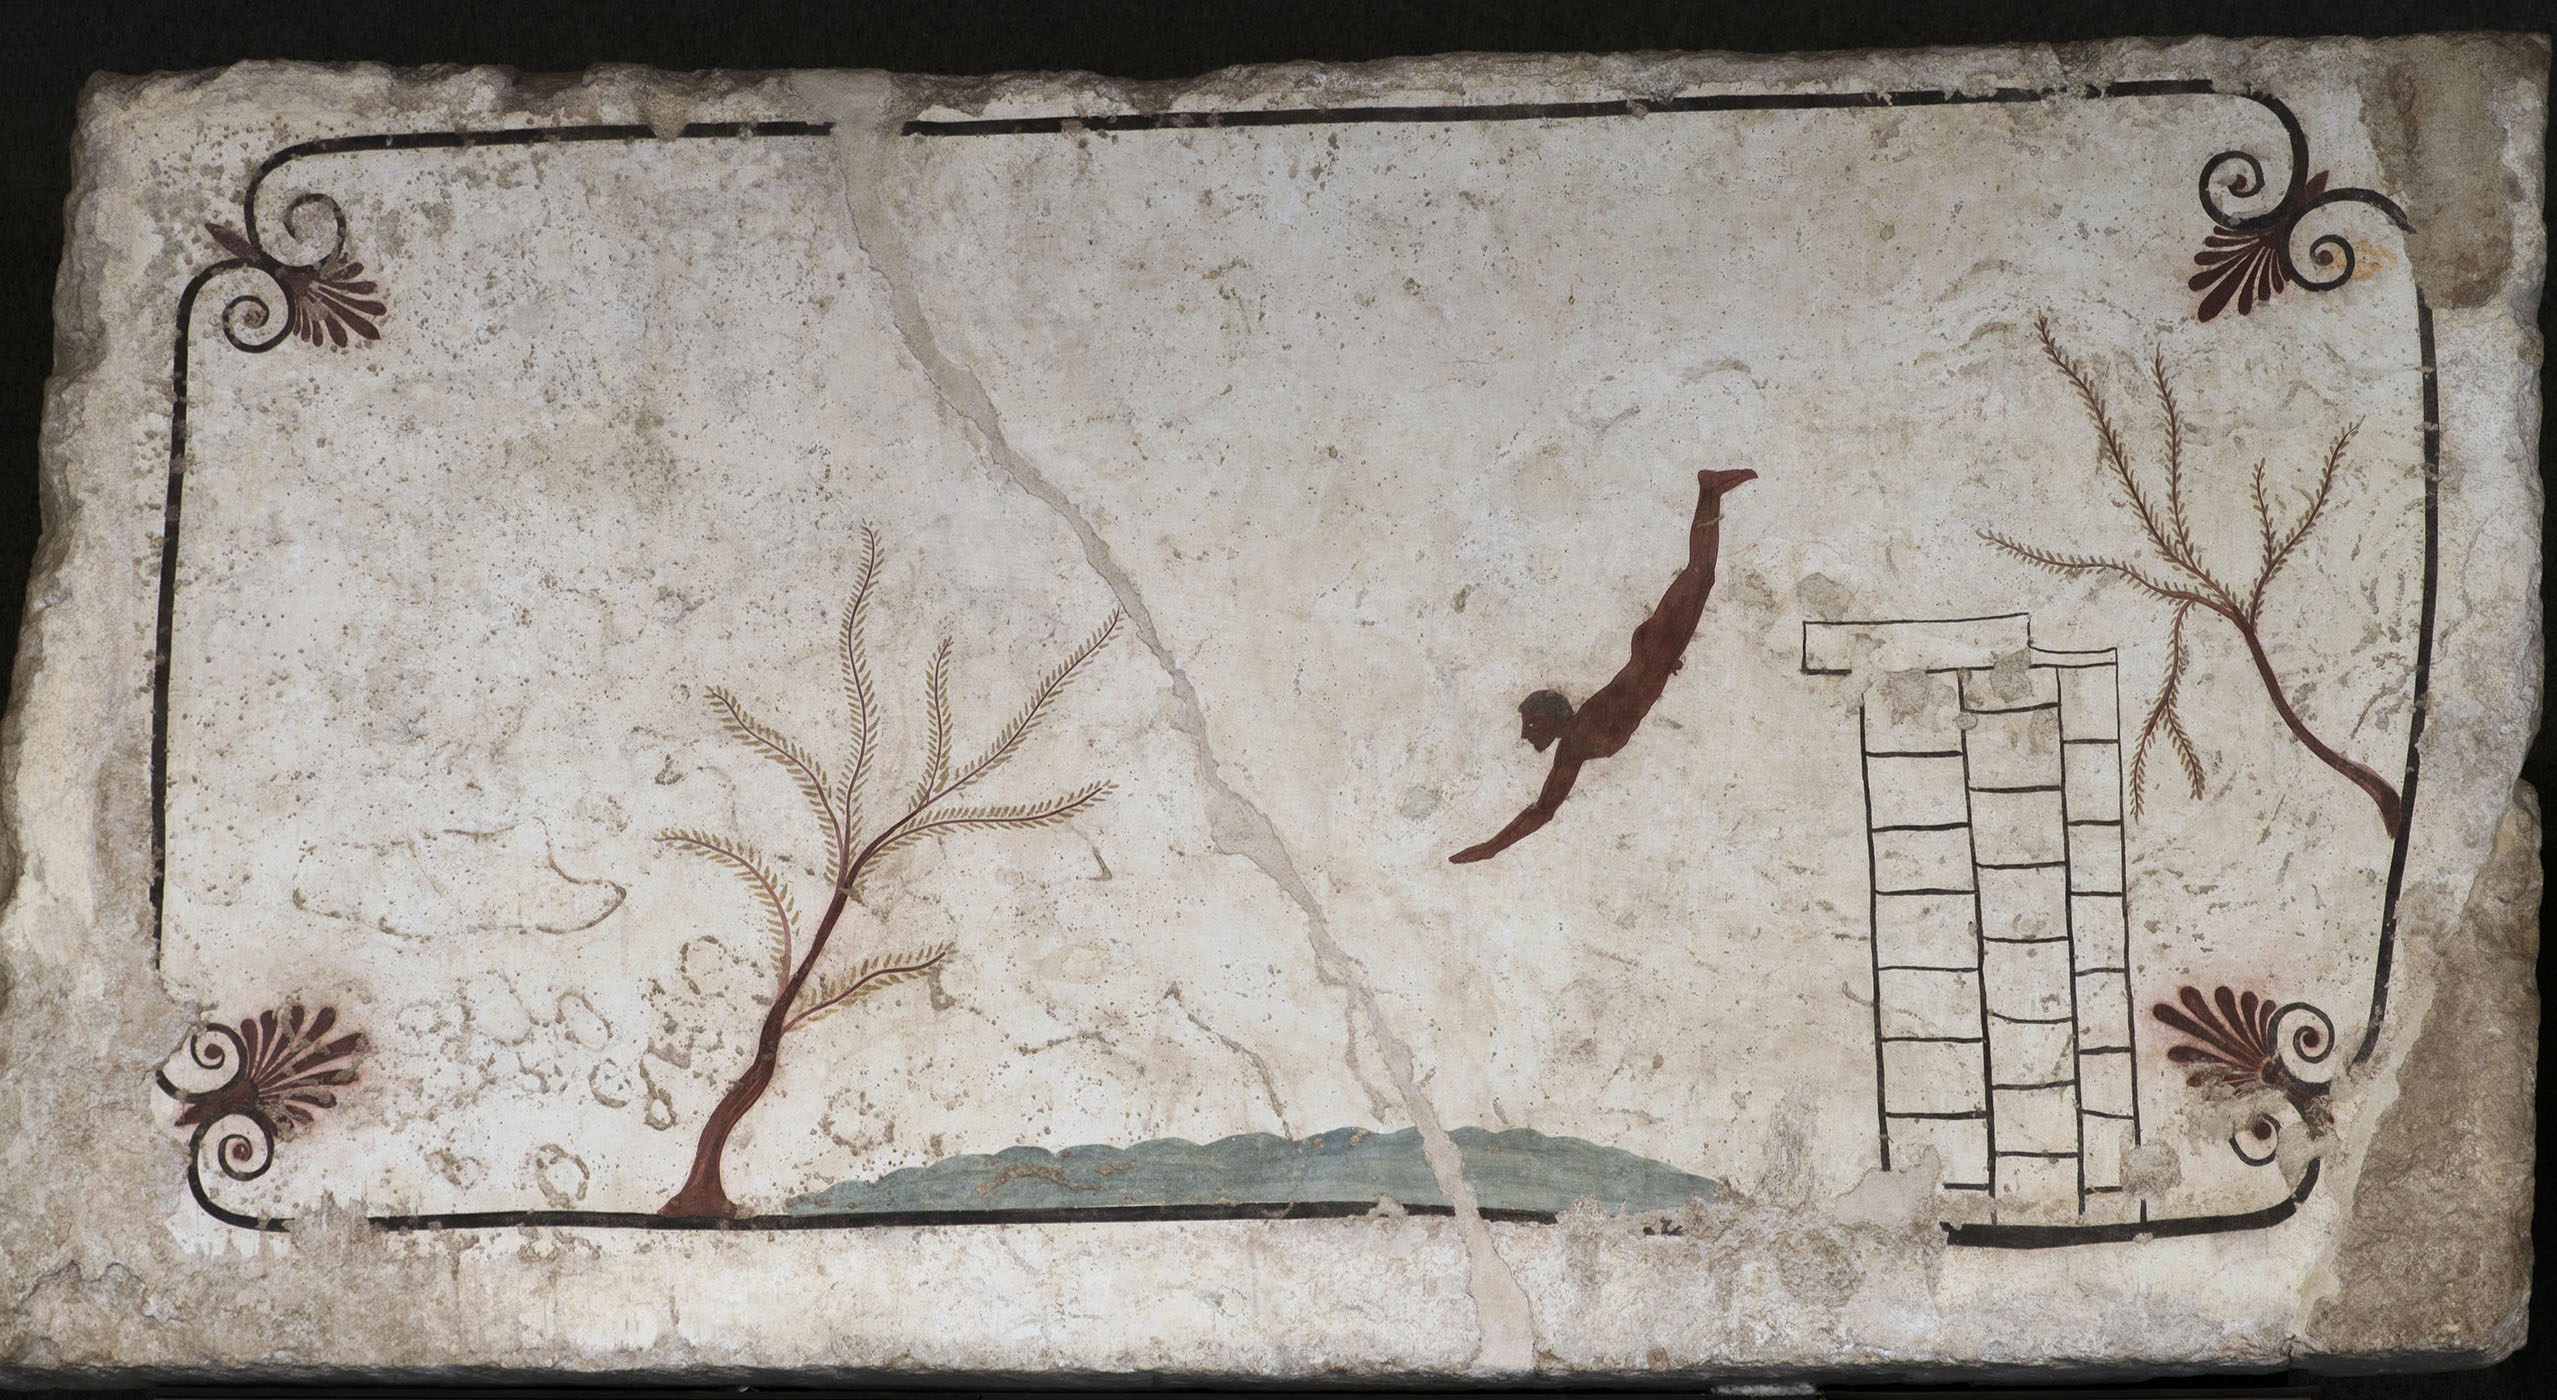 Diver. The inside wall of the lid of sarcophagus from Tomb of the Diver. Fresco. Ca. 480 BCE. Paestum, National Archaeological Museum